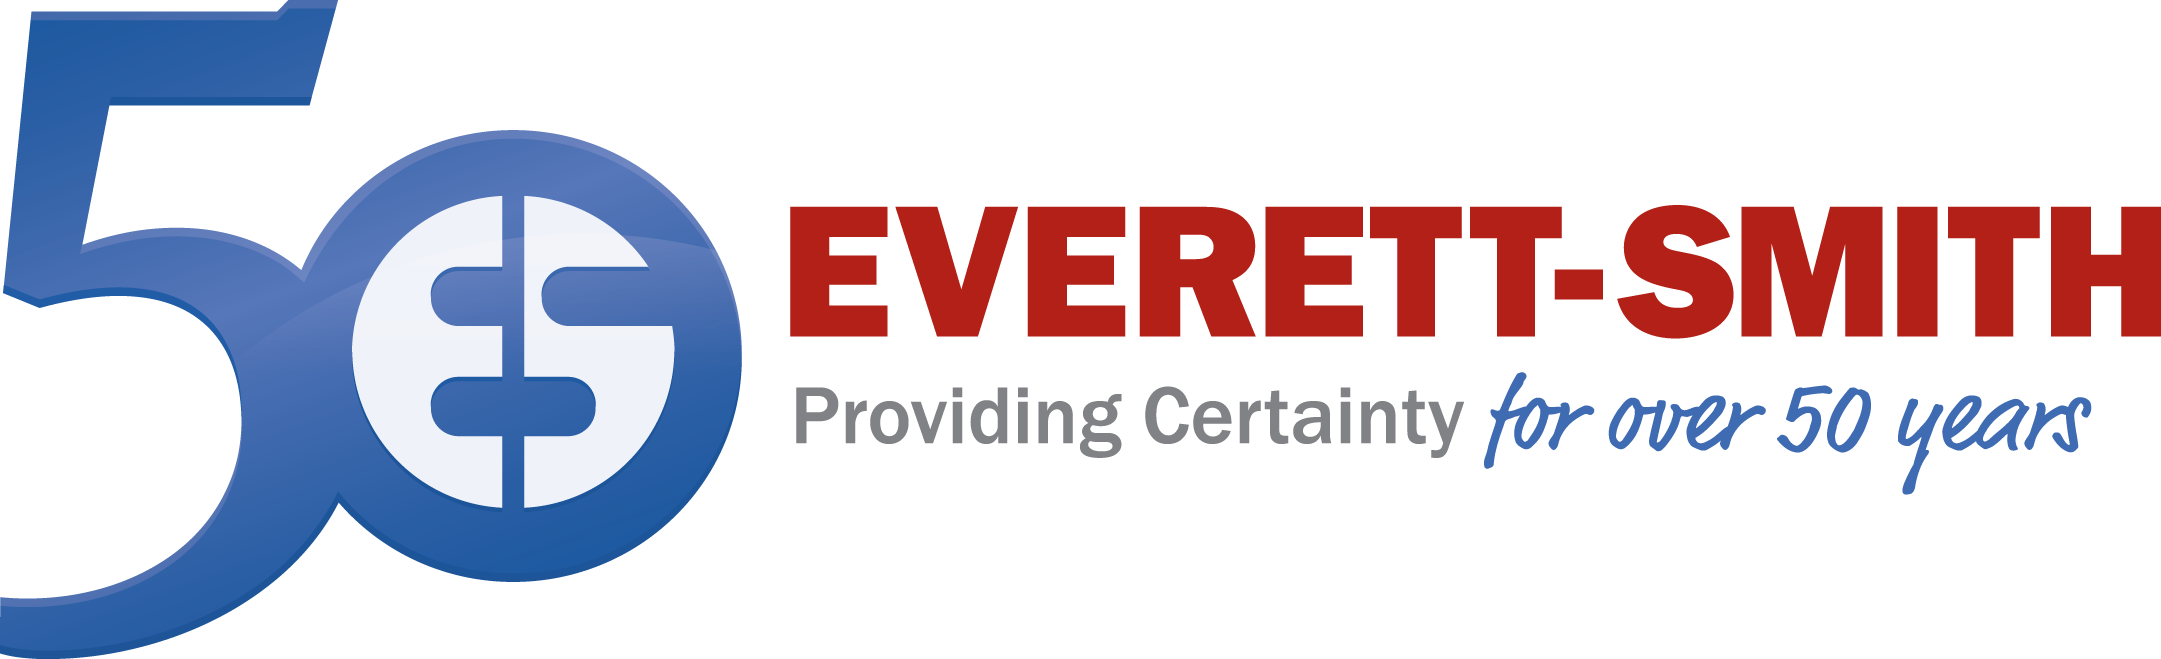 Everett Smith & Co Pty Ltd